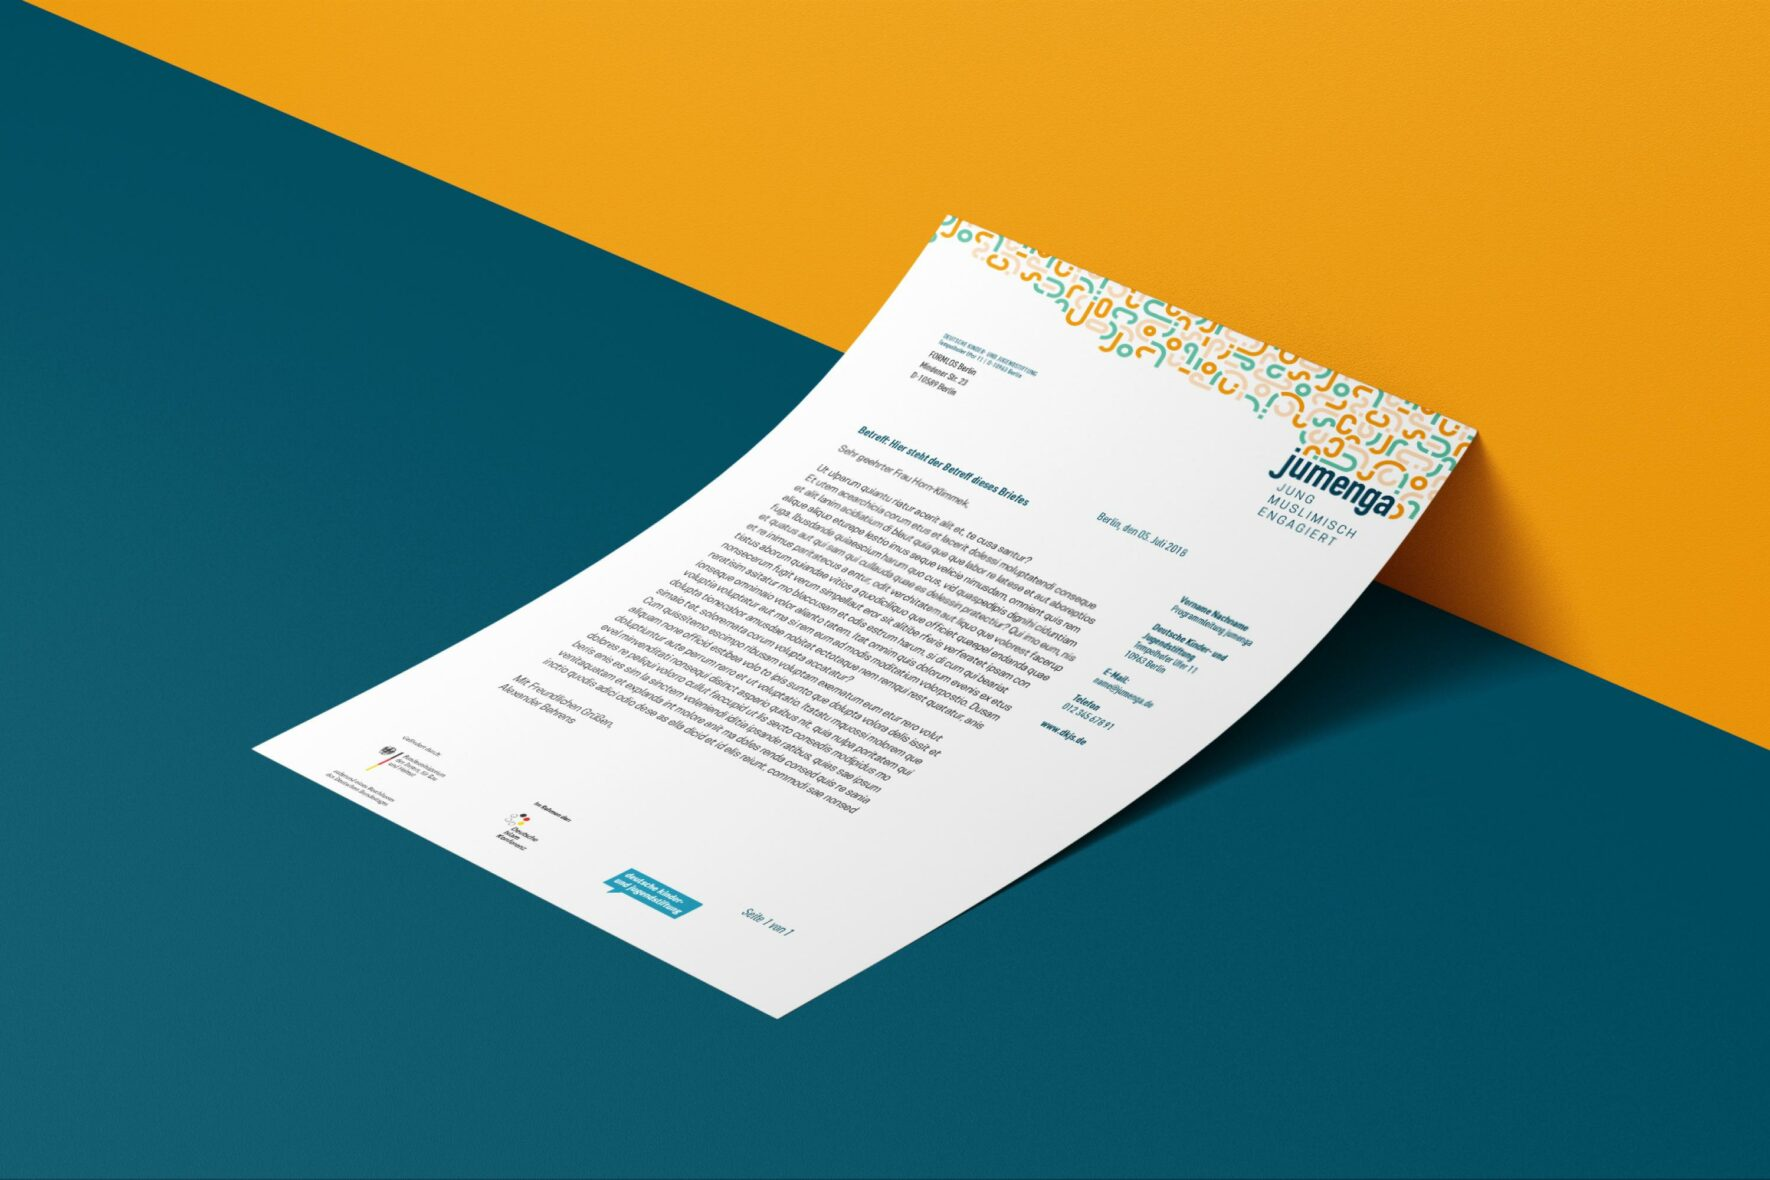 jumenga-Briefpapier-Corporate-Design-FORMLOS-Berlin-Print